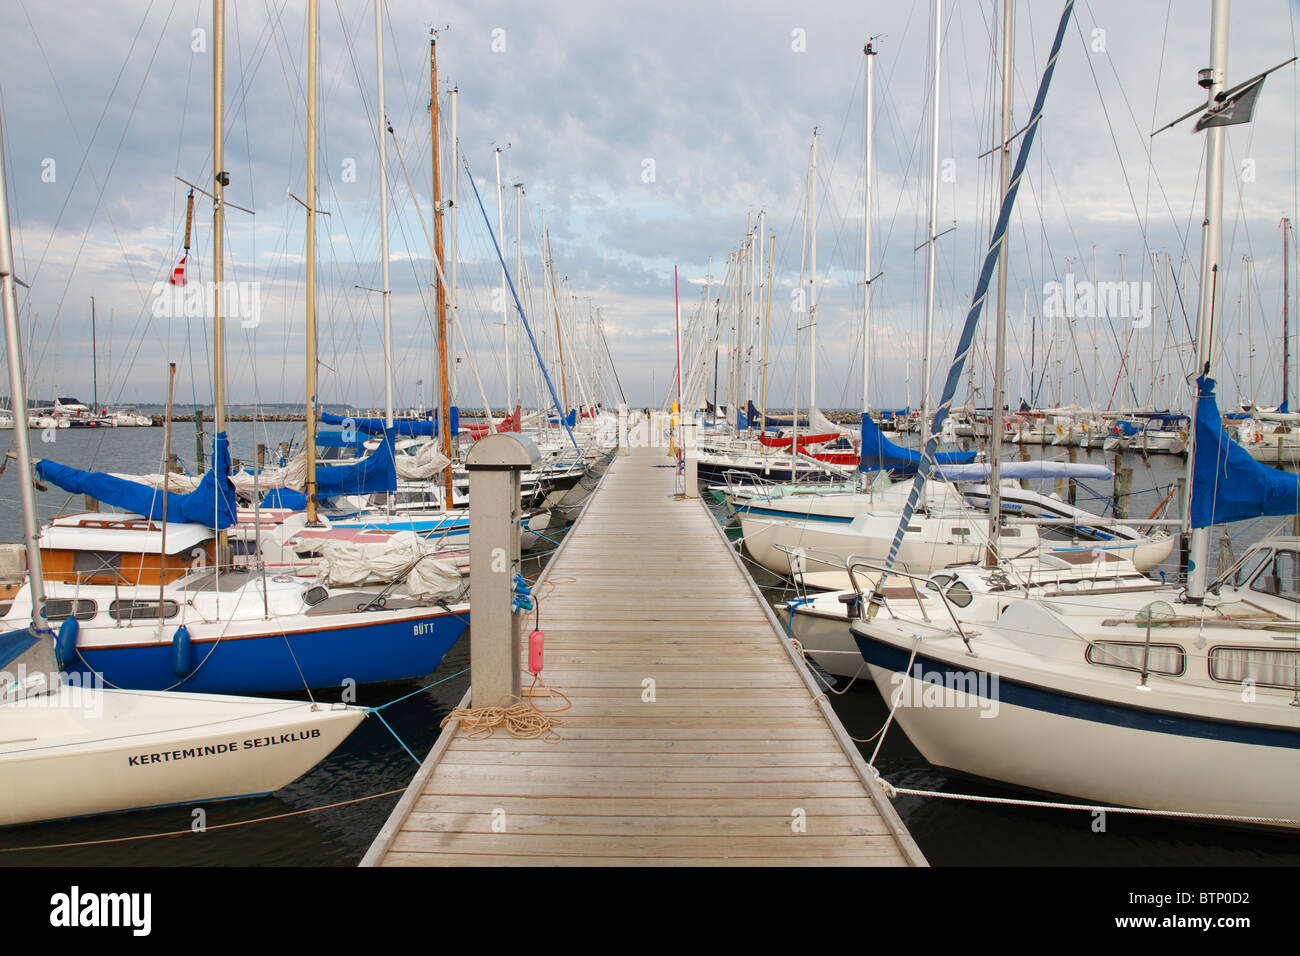 small sailing boats of the Kerteminde sailing club (Kerteminde Sejlklub) - Stock Image